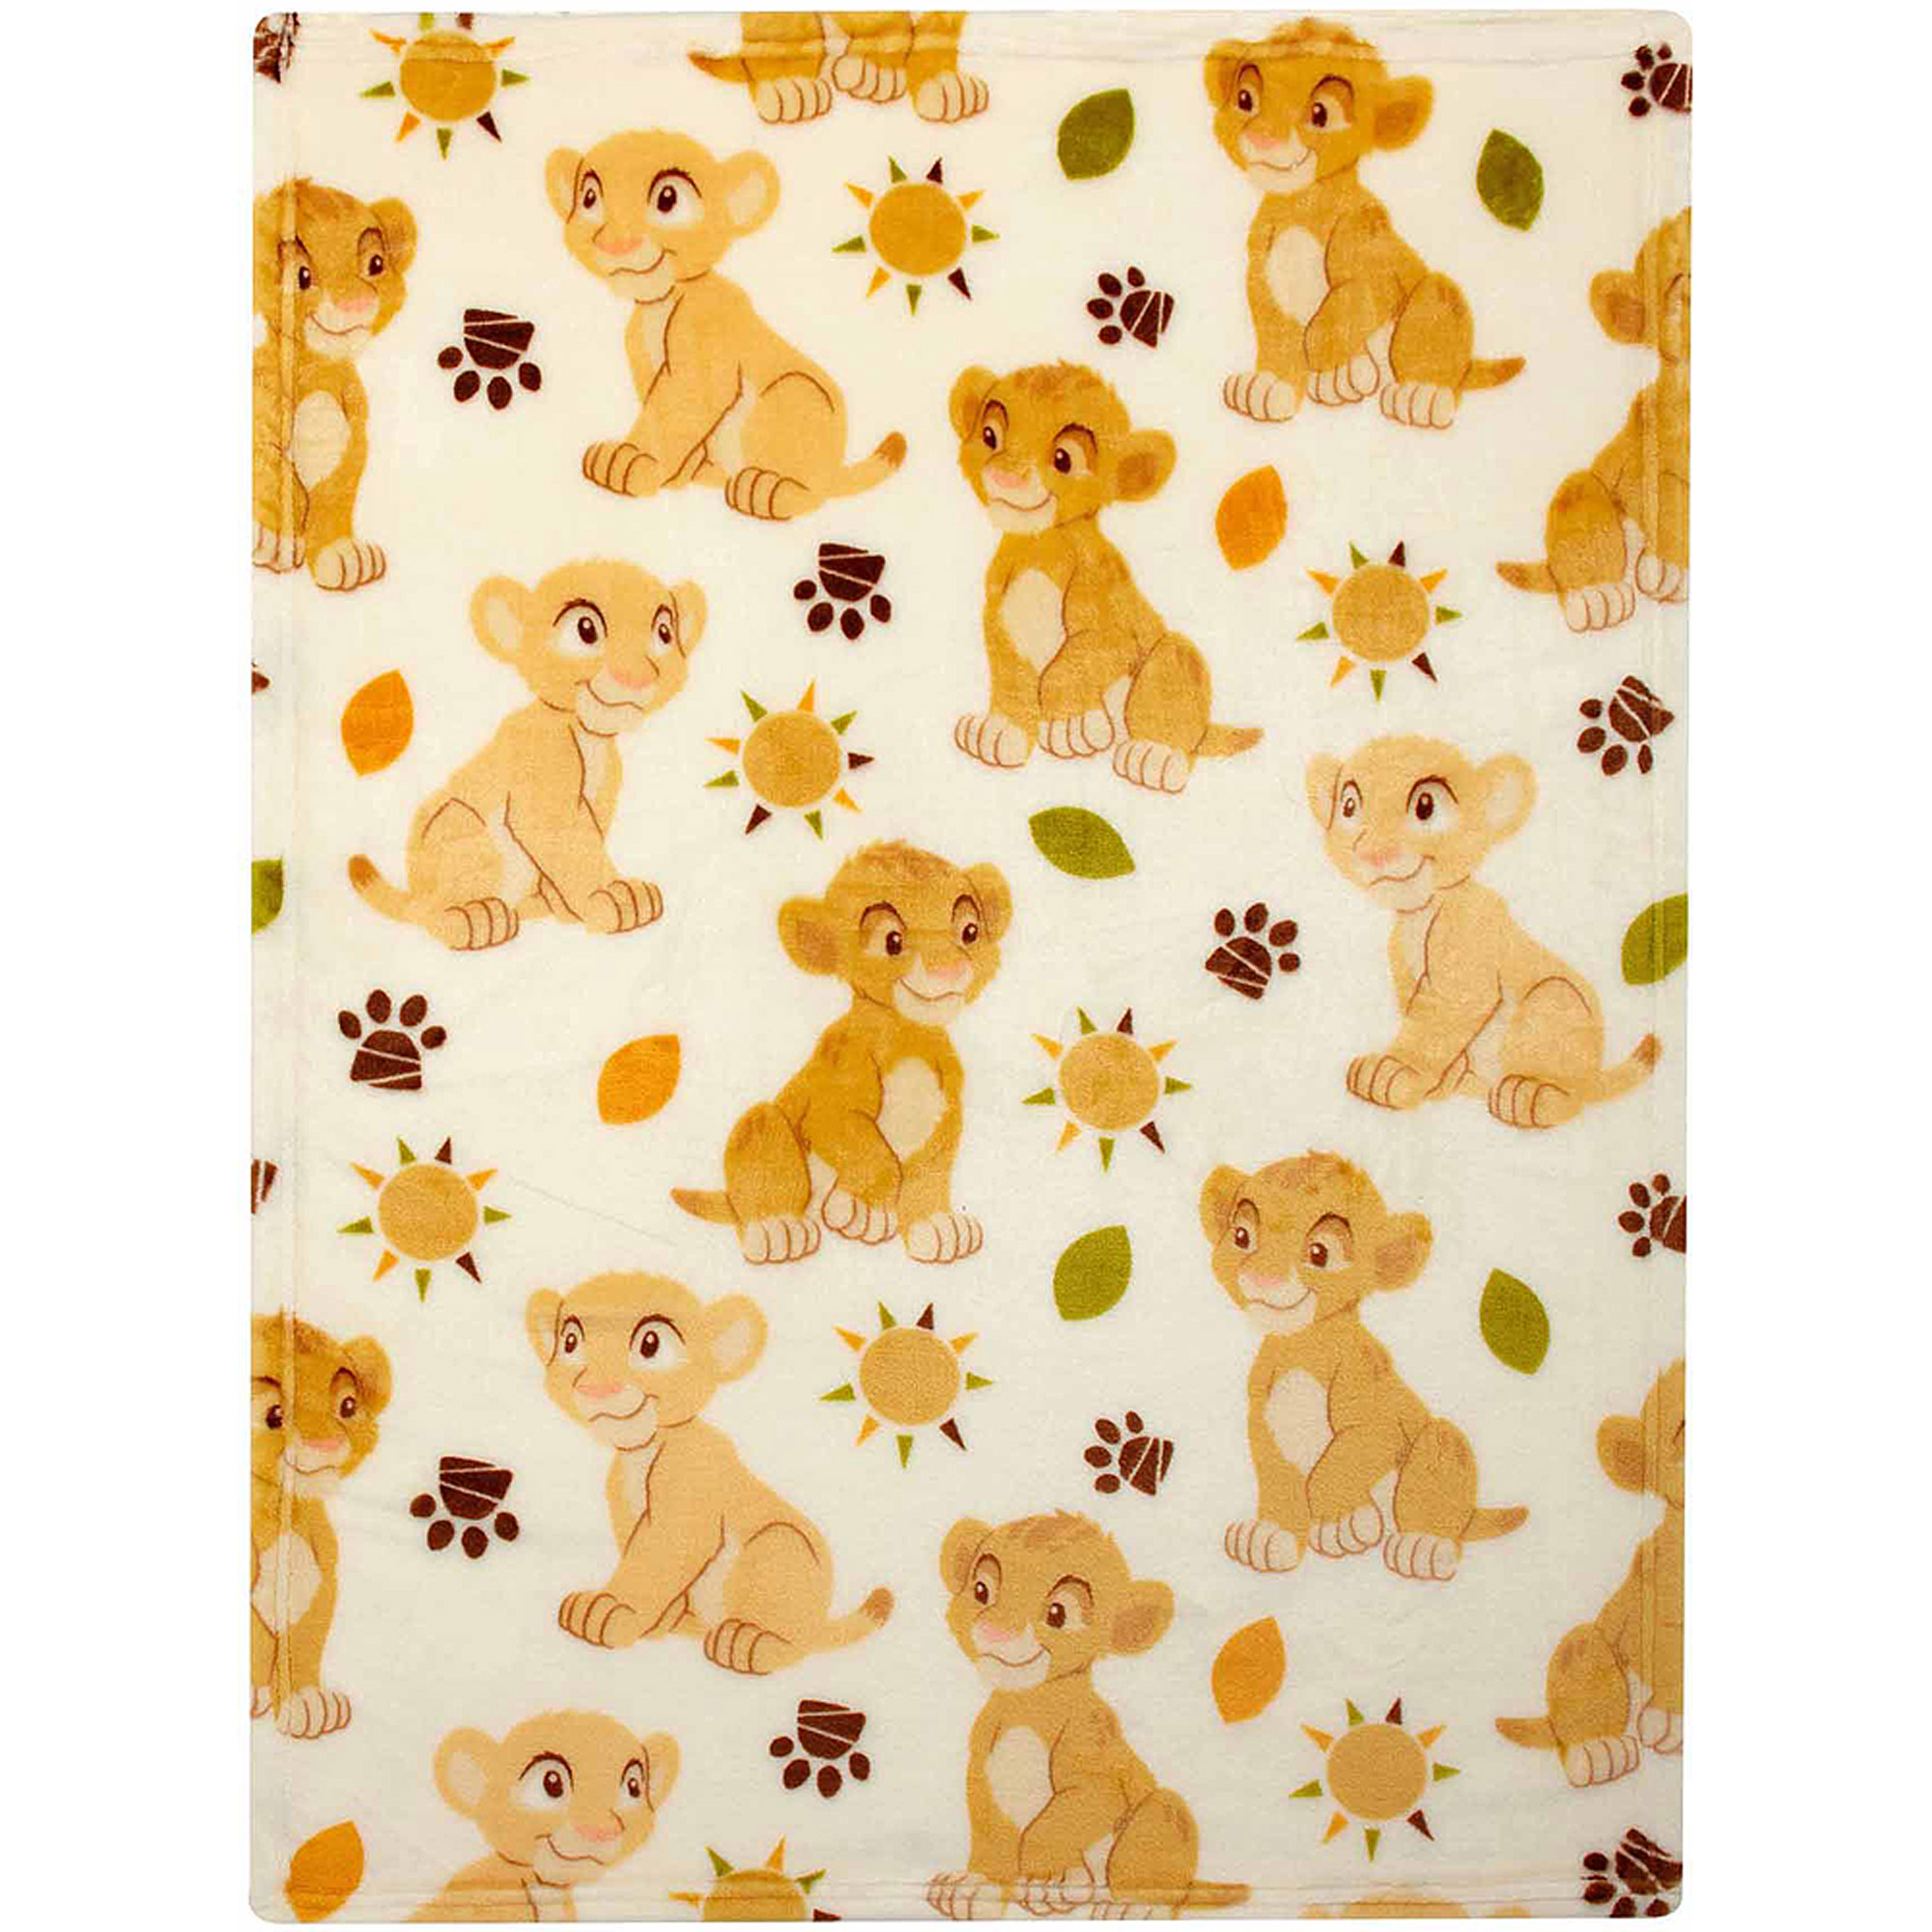 Jcpenney Baby Blankets | Lion King Nursery Set | Carters Crib Bedding